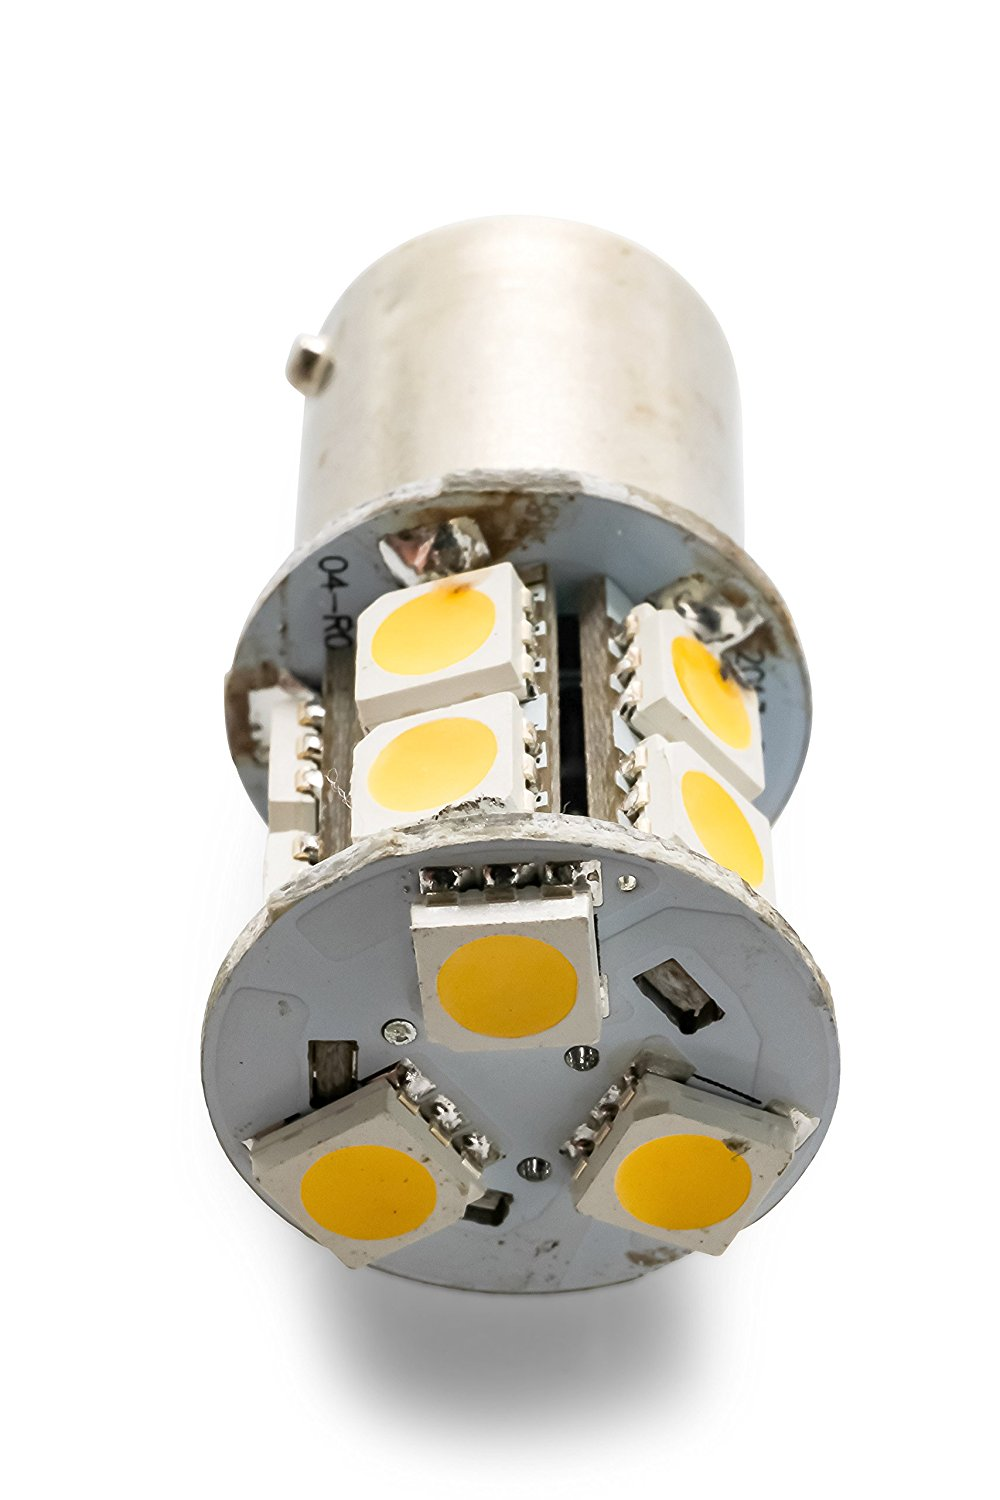 LED - 1157 / 1016 (BAY15D-Index) 13-LED 140lm - Bright White